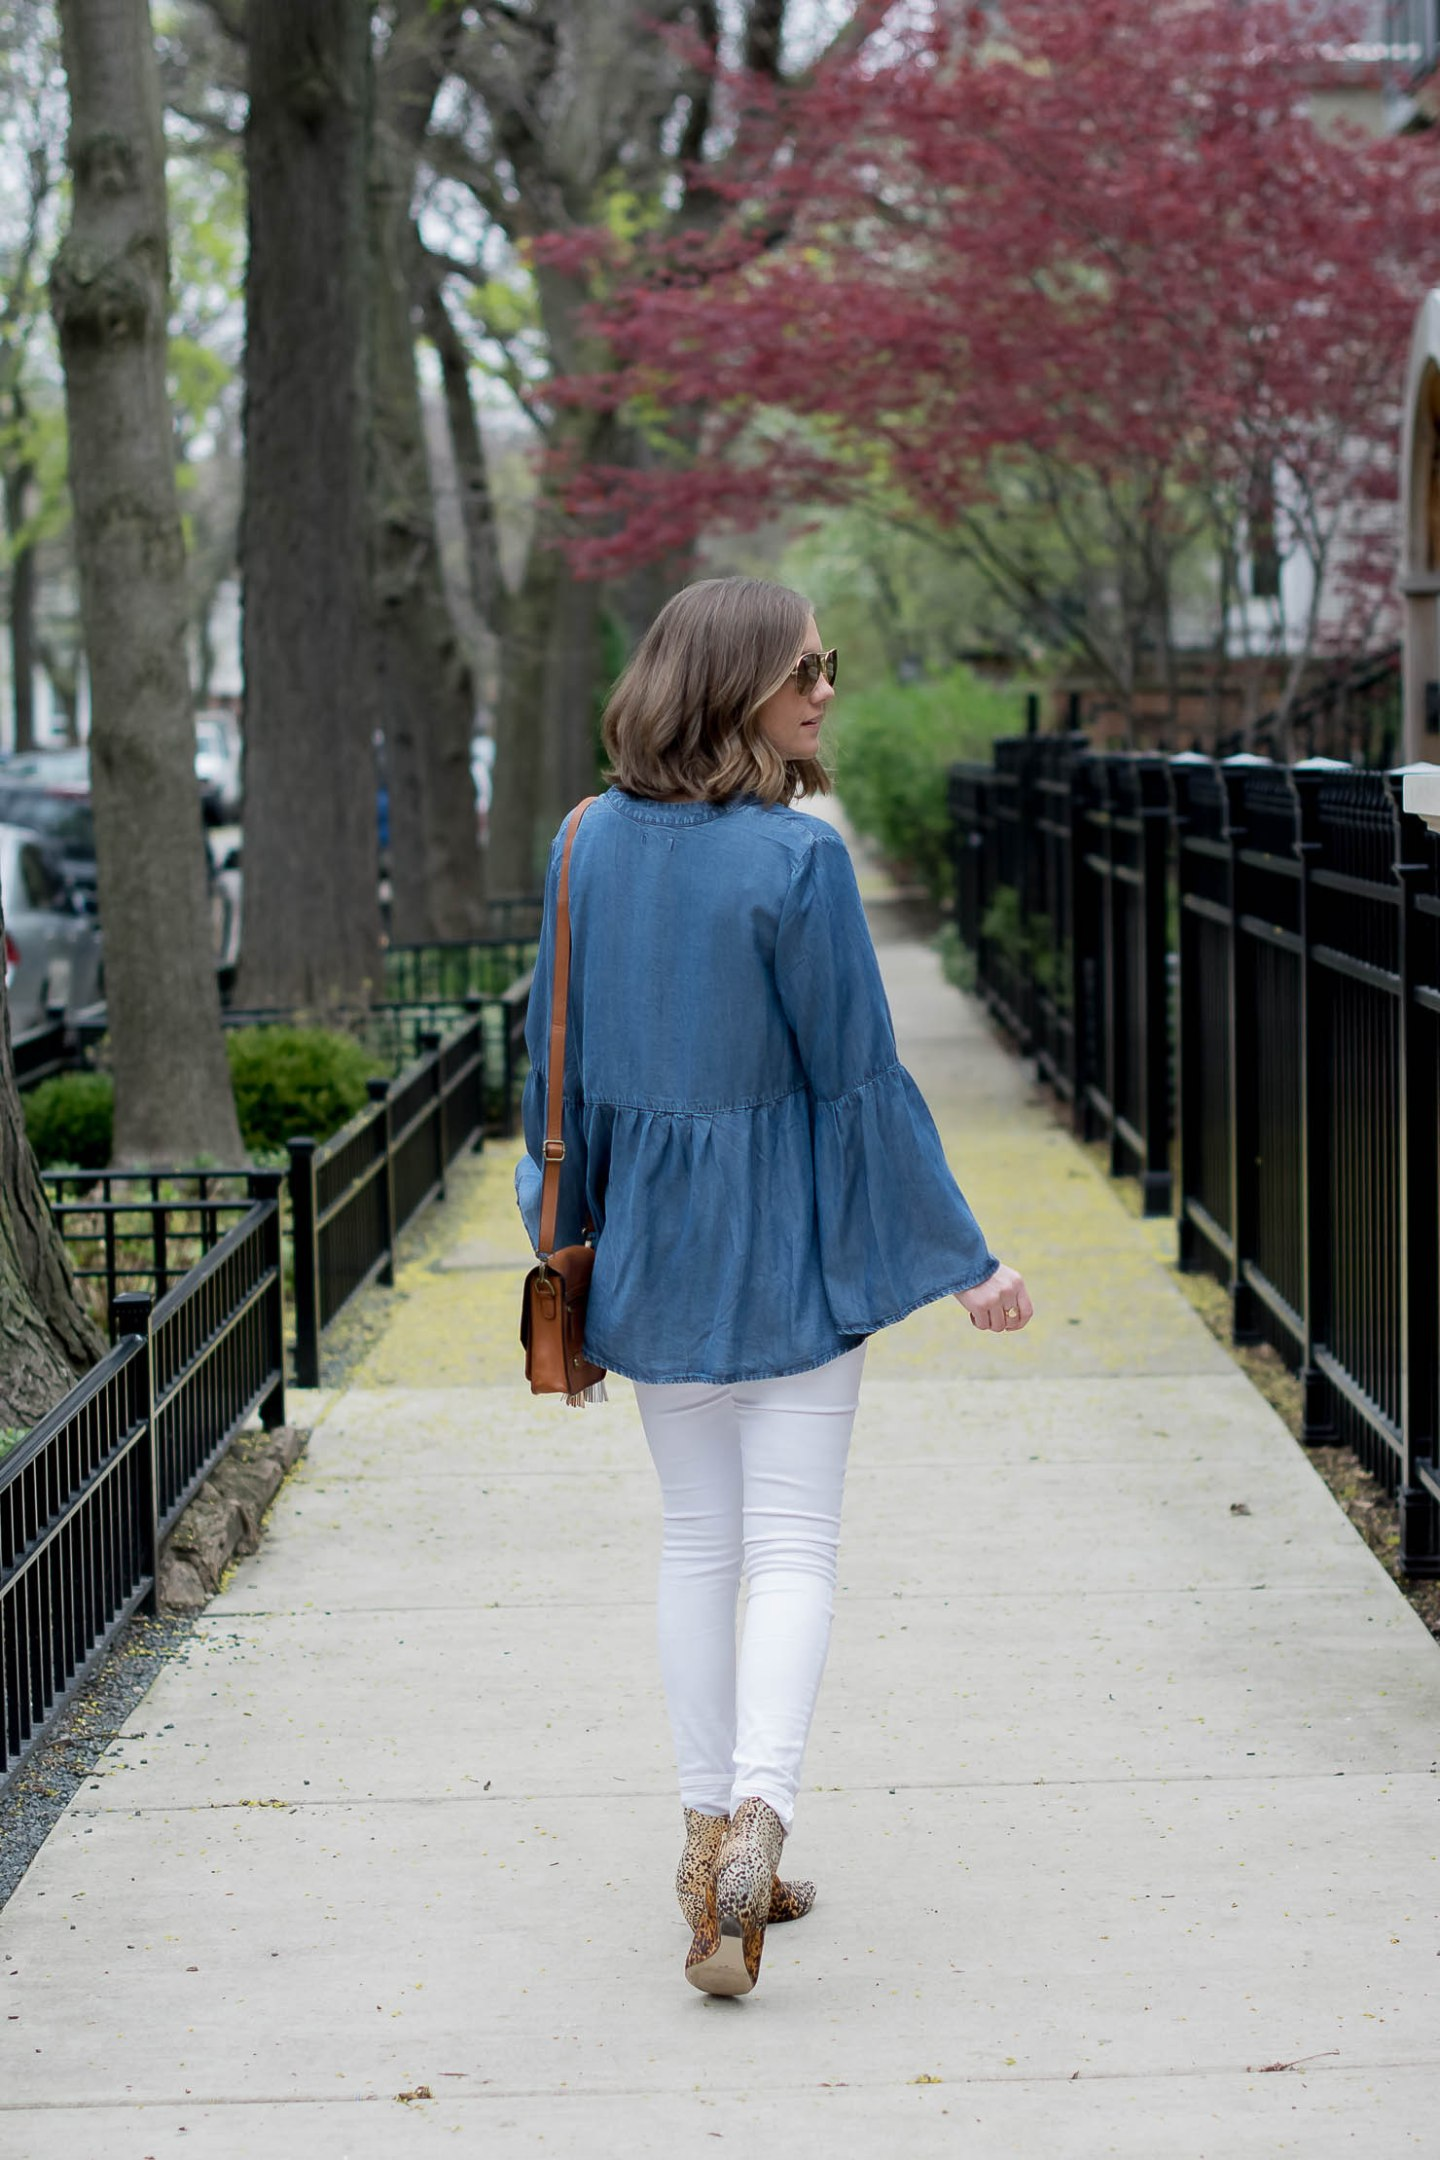 transitioning-white-jeans-for-fall-hm-denim-bell-sleeve-top-matisse-leopard-booties-metallic-bag-tassel-charms-11